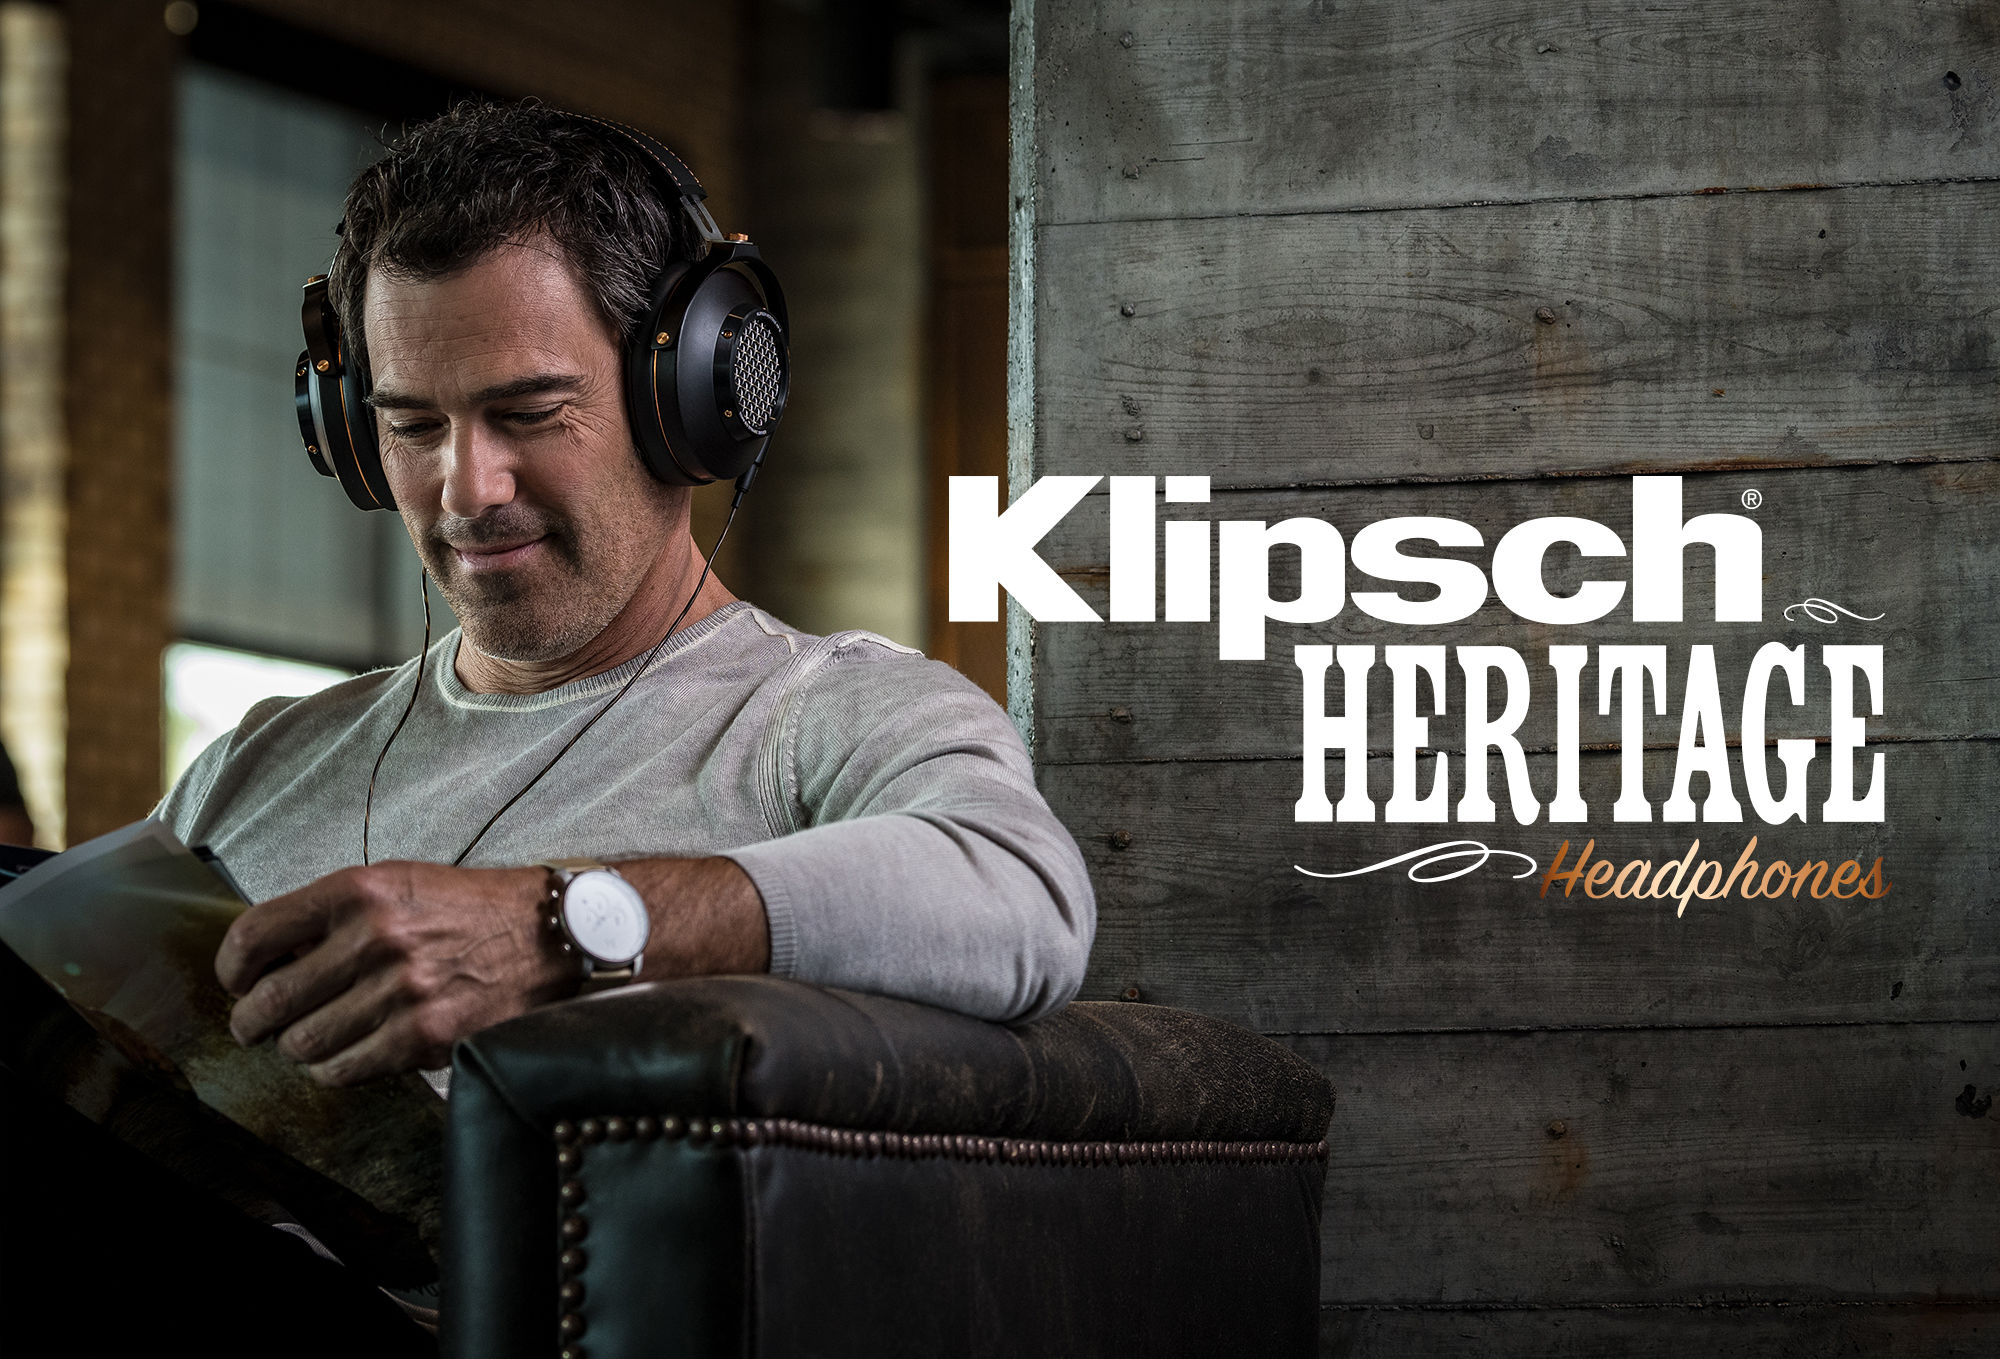 Man reading a magazine on a couch while listening to the Heritage HP-3 headphones